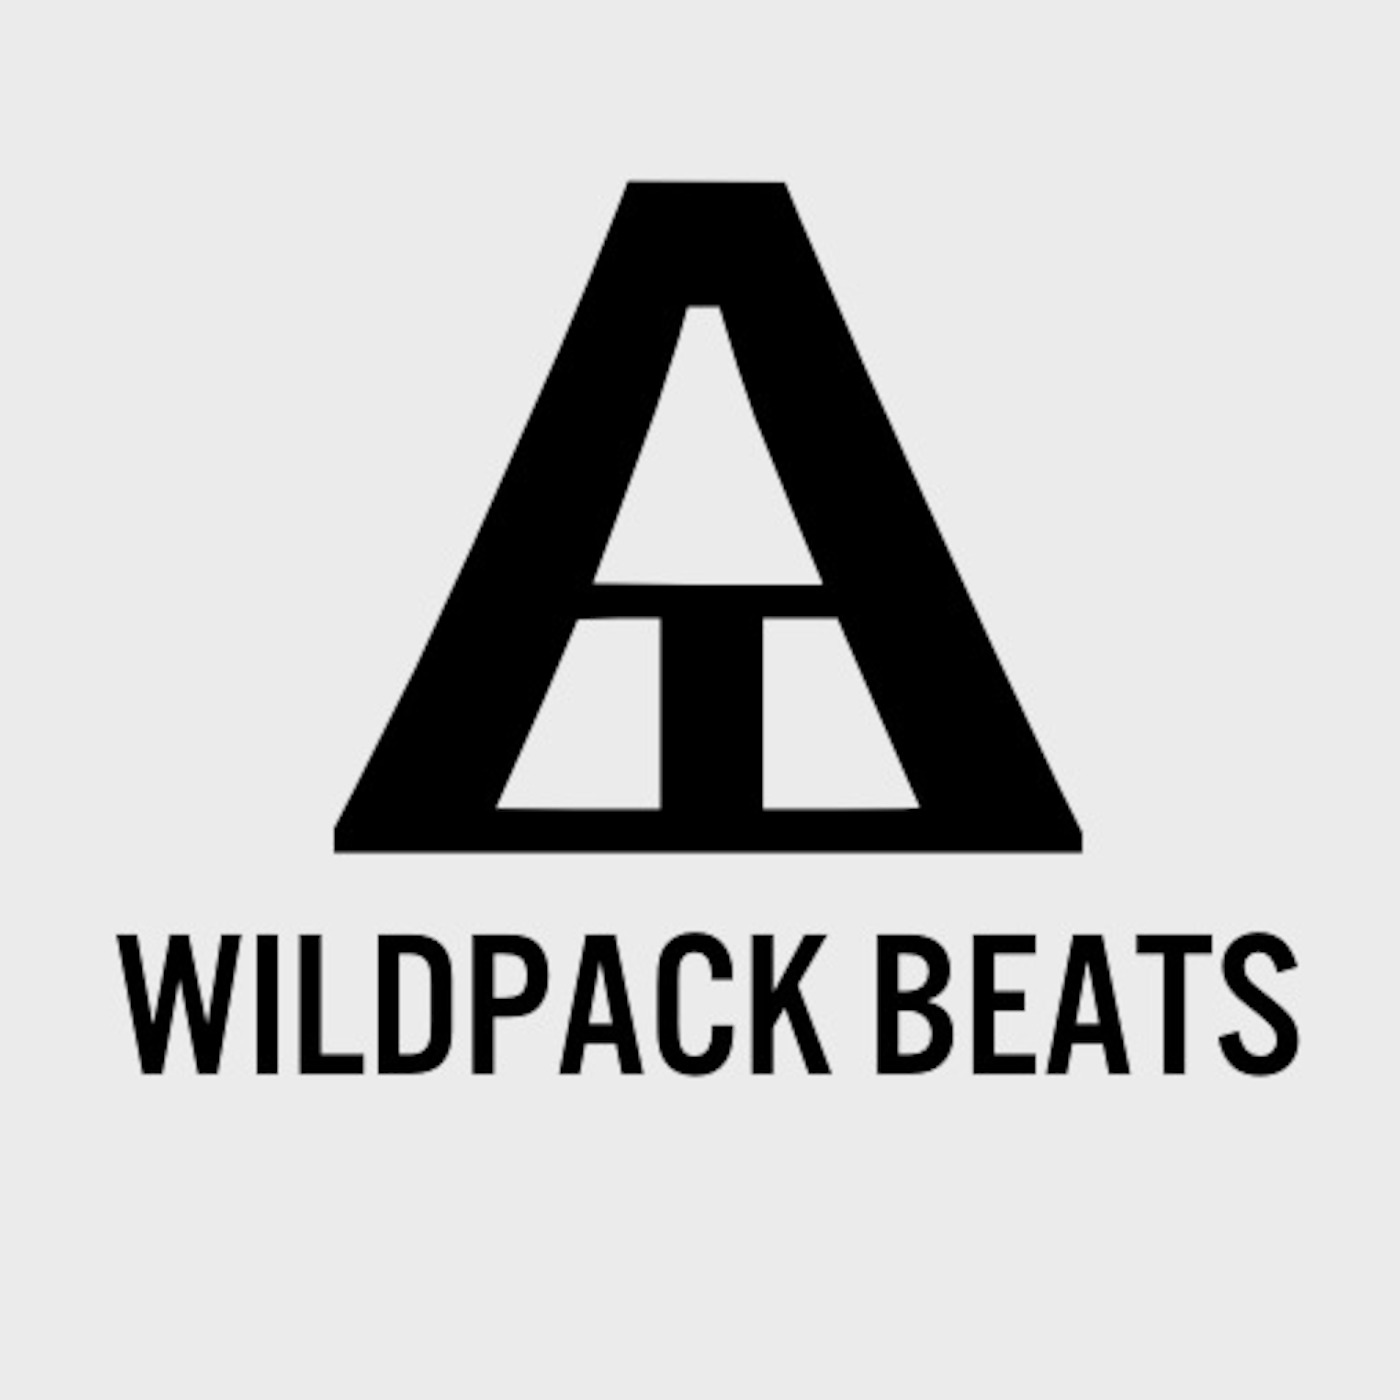 Eugeni Aguilar presents WILDPACK BEATS